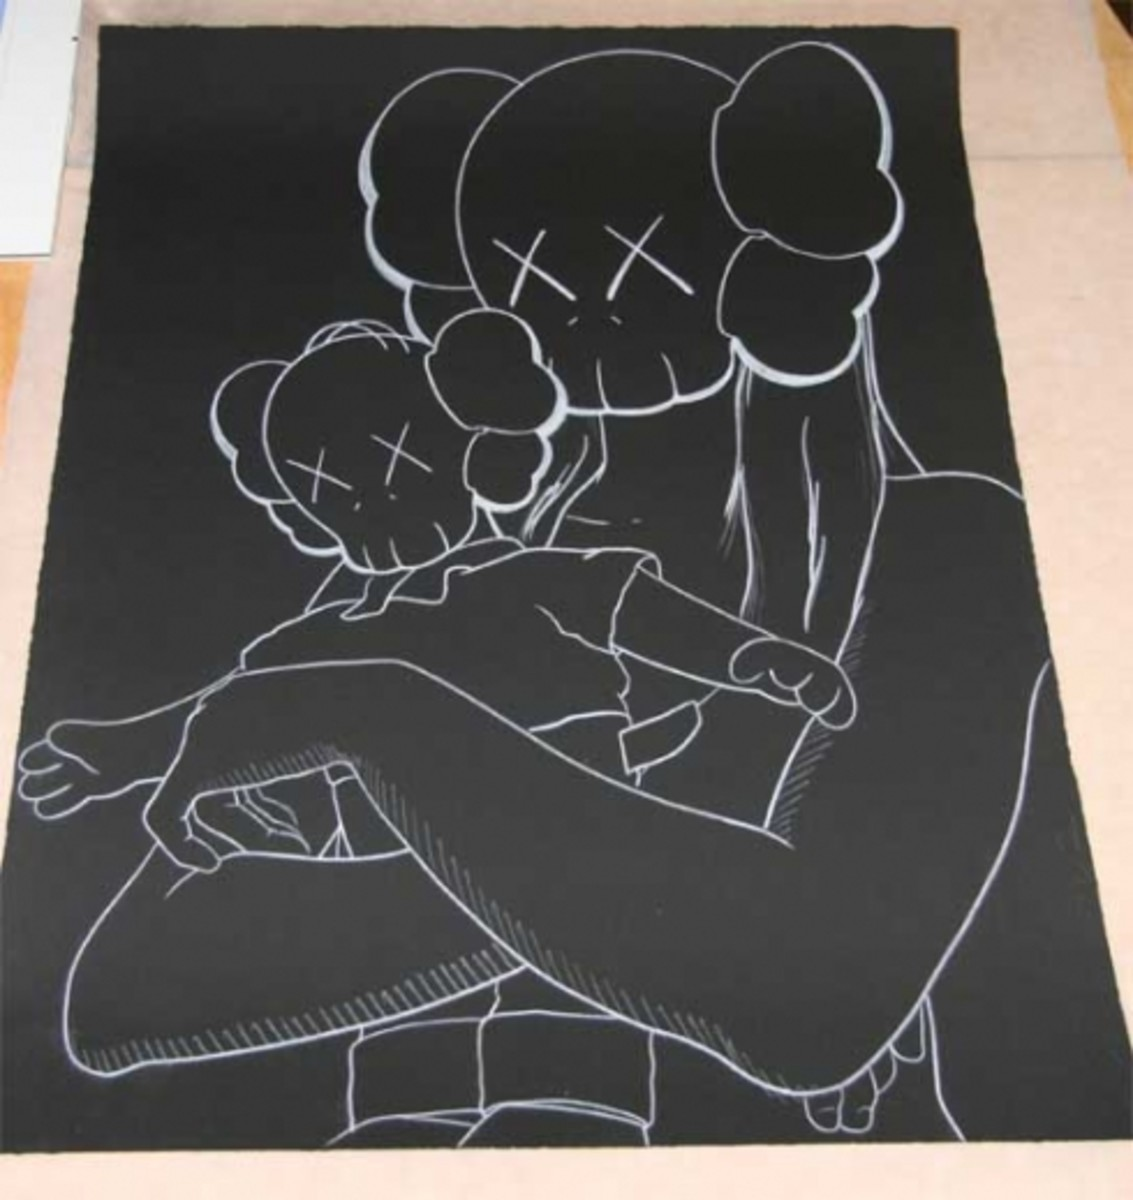 HSNY - Block Party Contemporary Art Silent Auction - KAWS